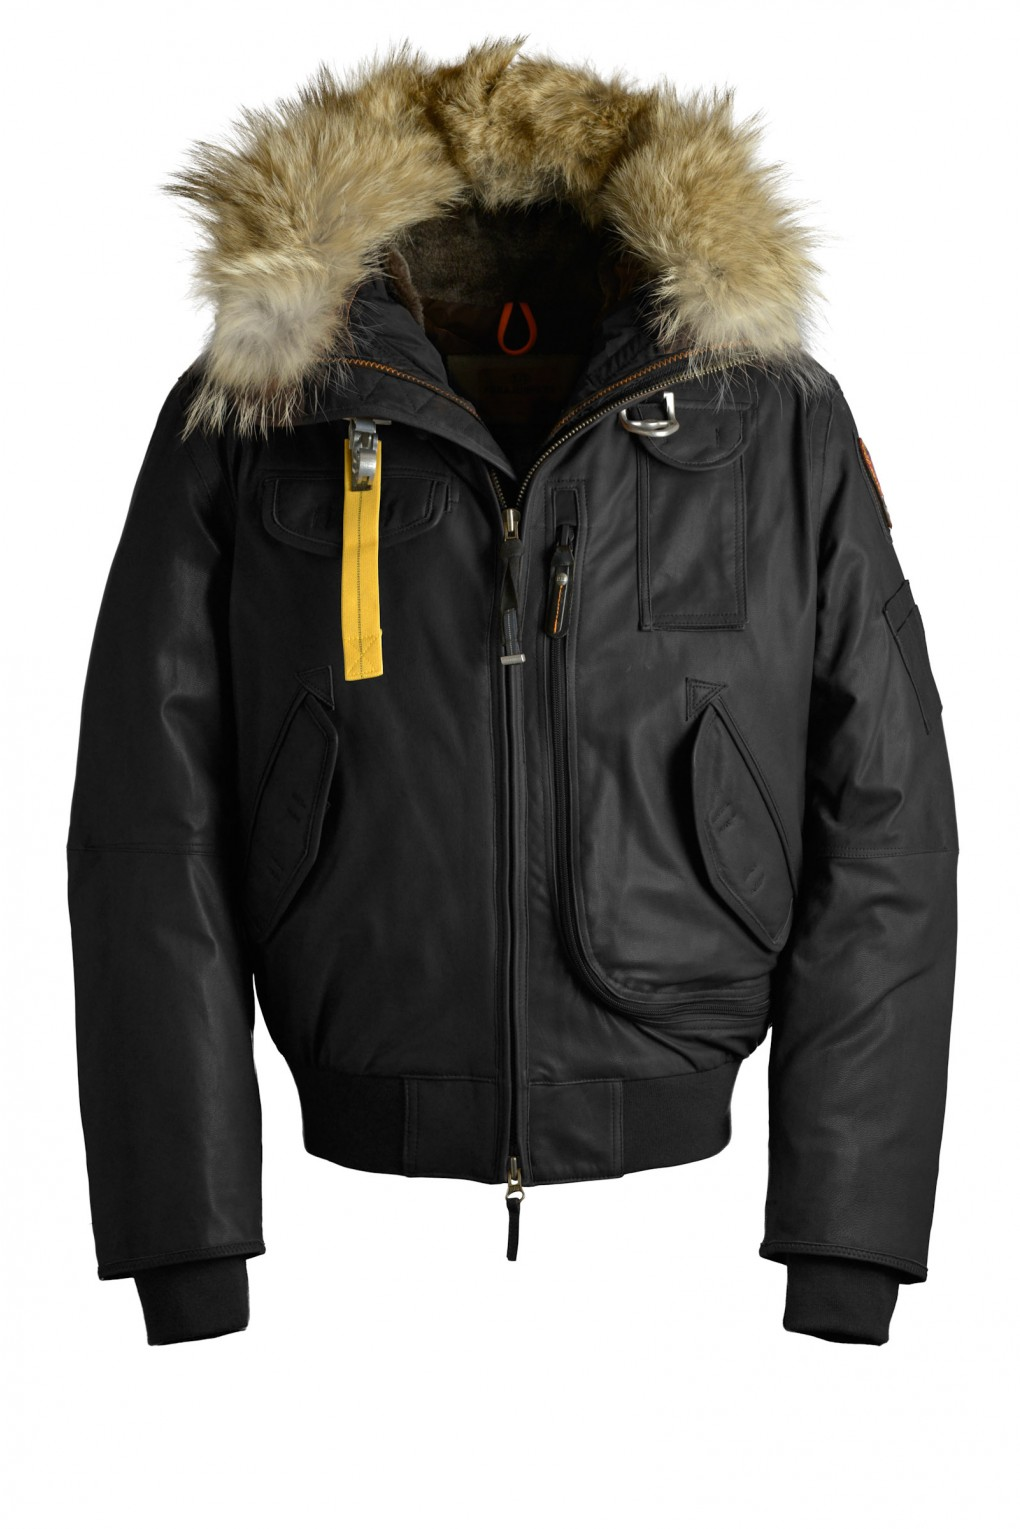 parajumpers GOBI LEATHER man outerwear Black